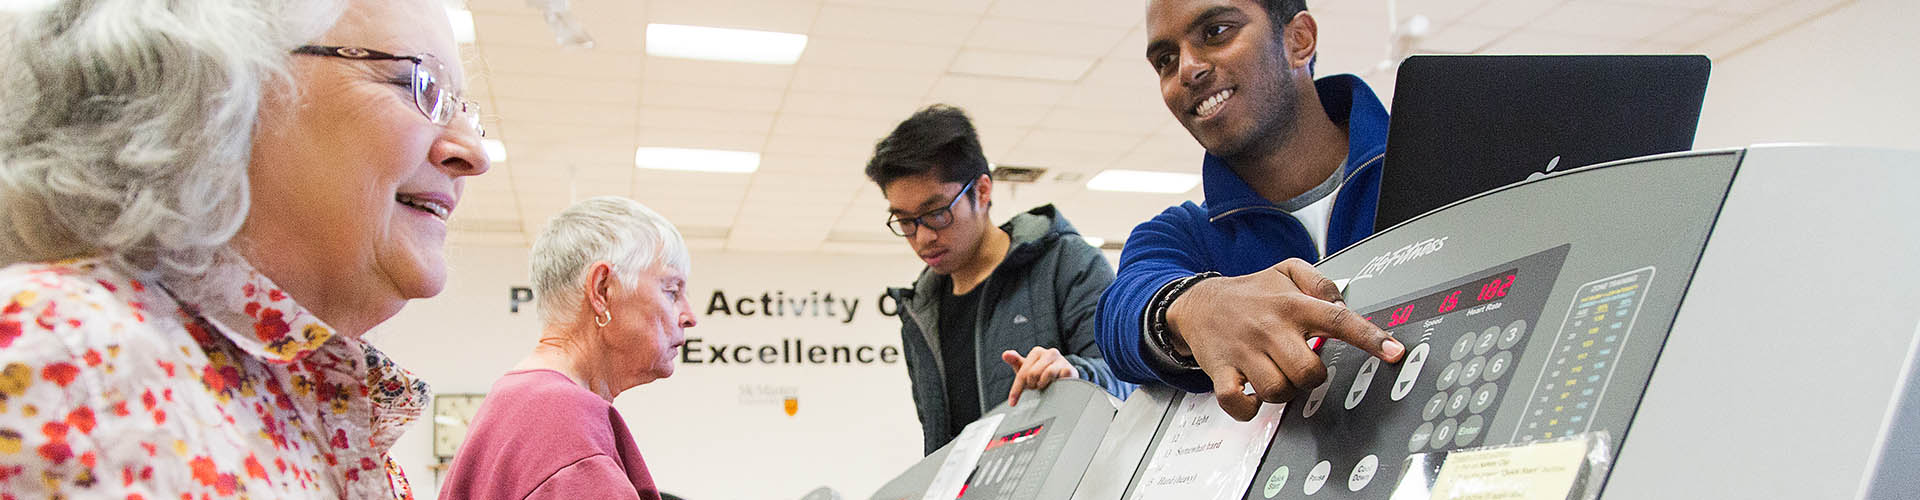 McMaster Physical Activity Centre of Excellence (PACE)